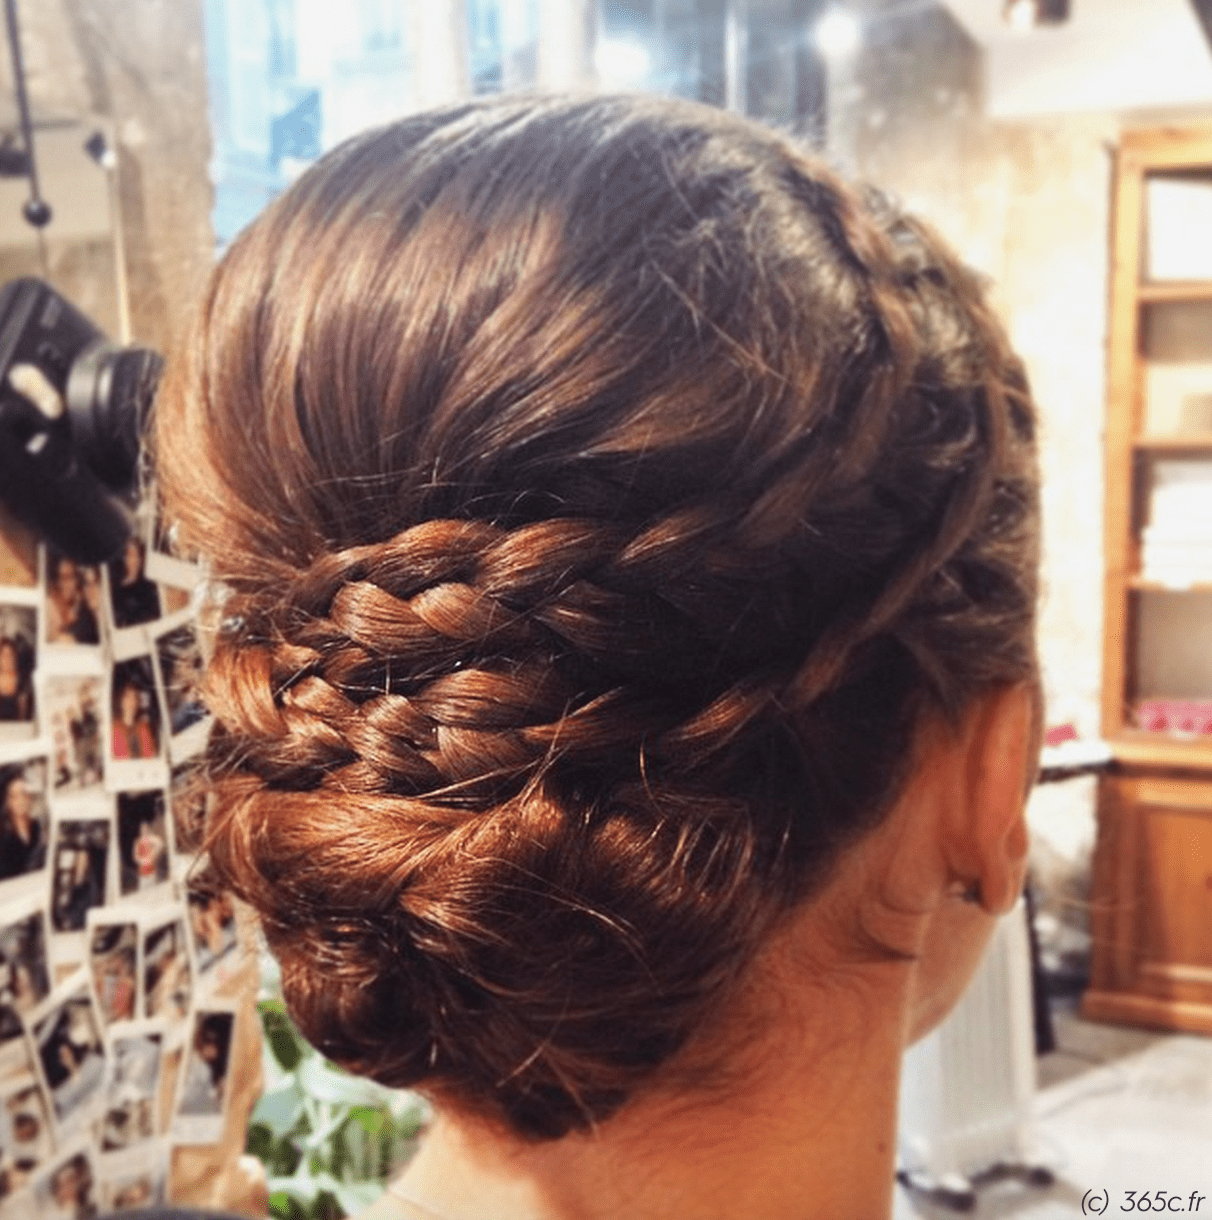 Coiffure 365c Hairstyle Updo Wedding Hairstyle Braid Brown Hair